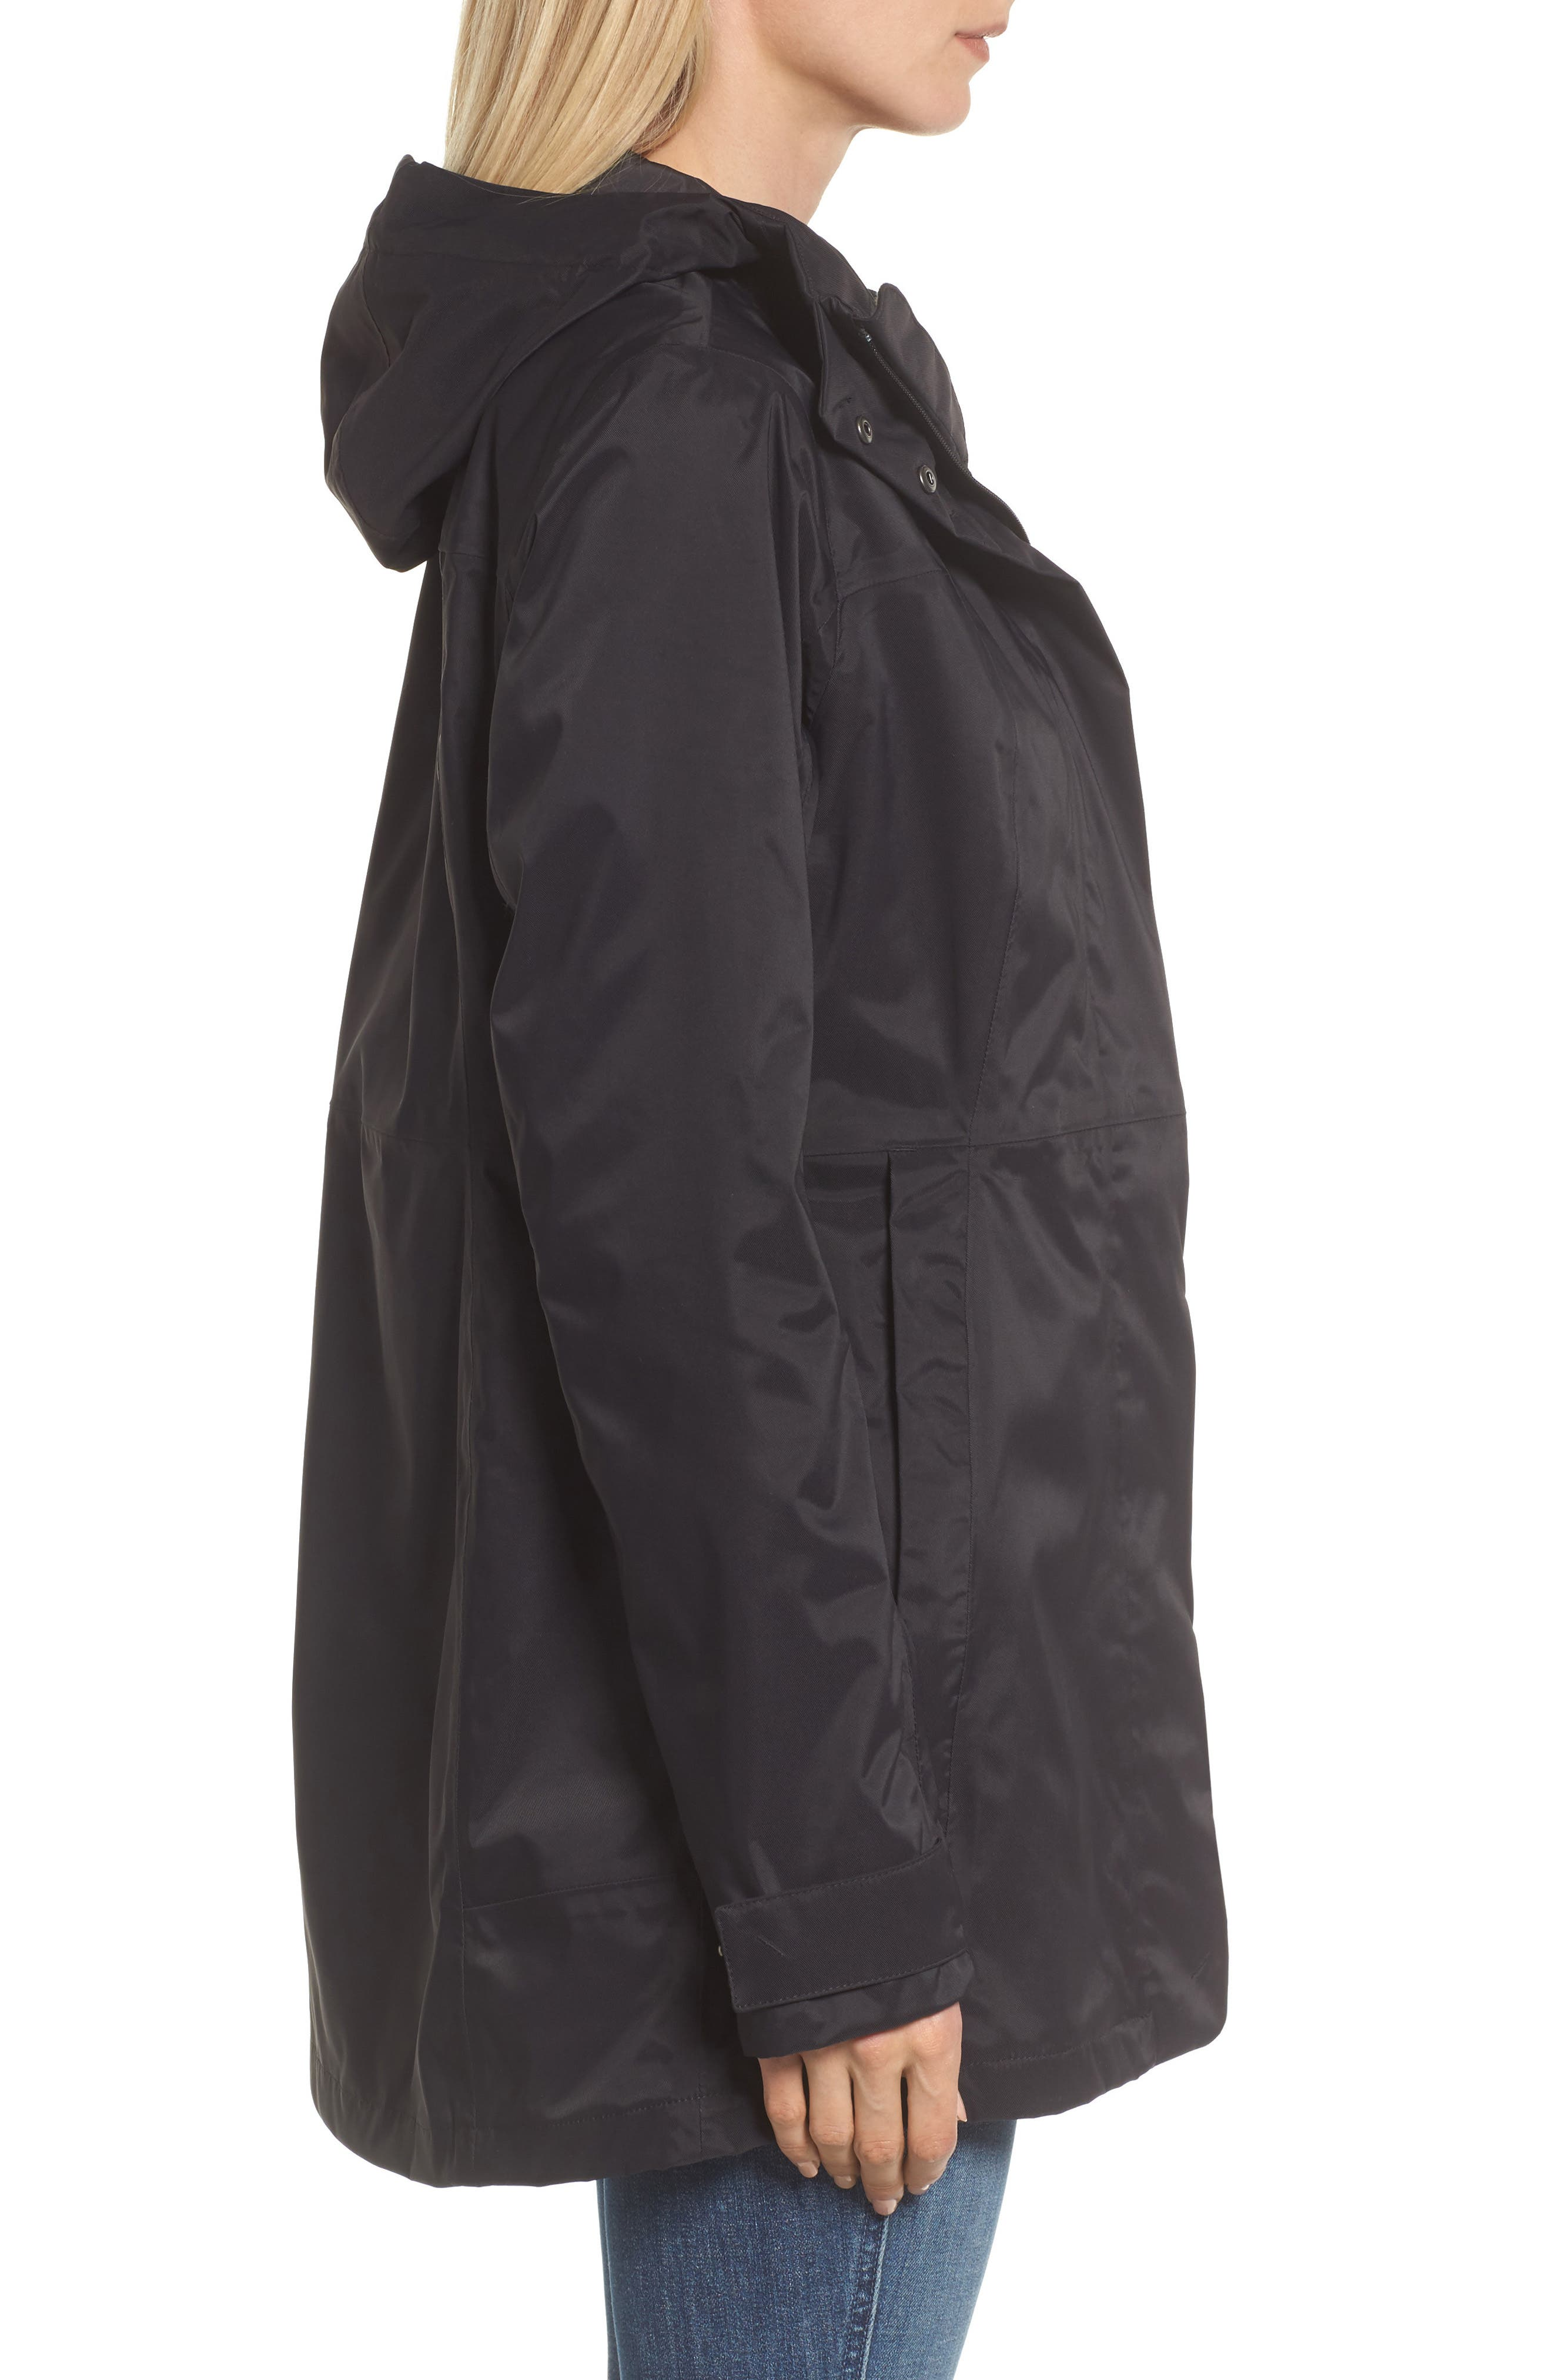 THE NORTH FACE, City Midi Trench Coat, Alternate thumbnail 4, color, 001